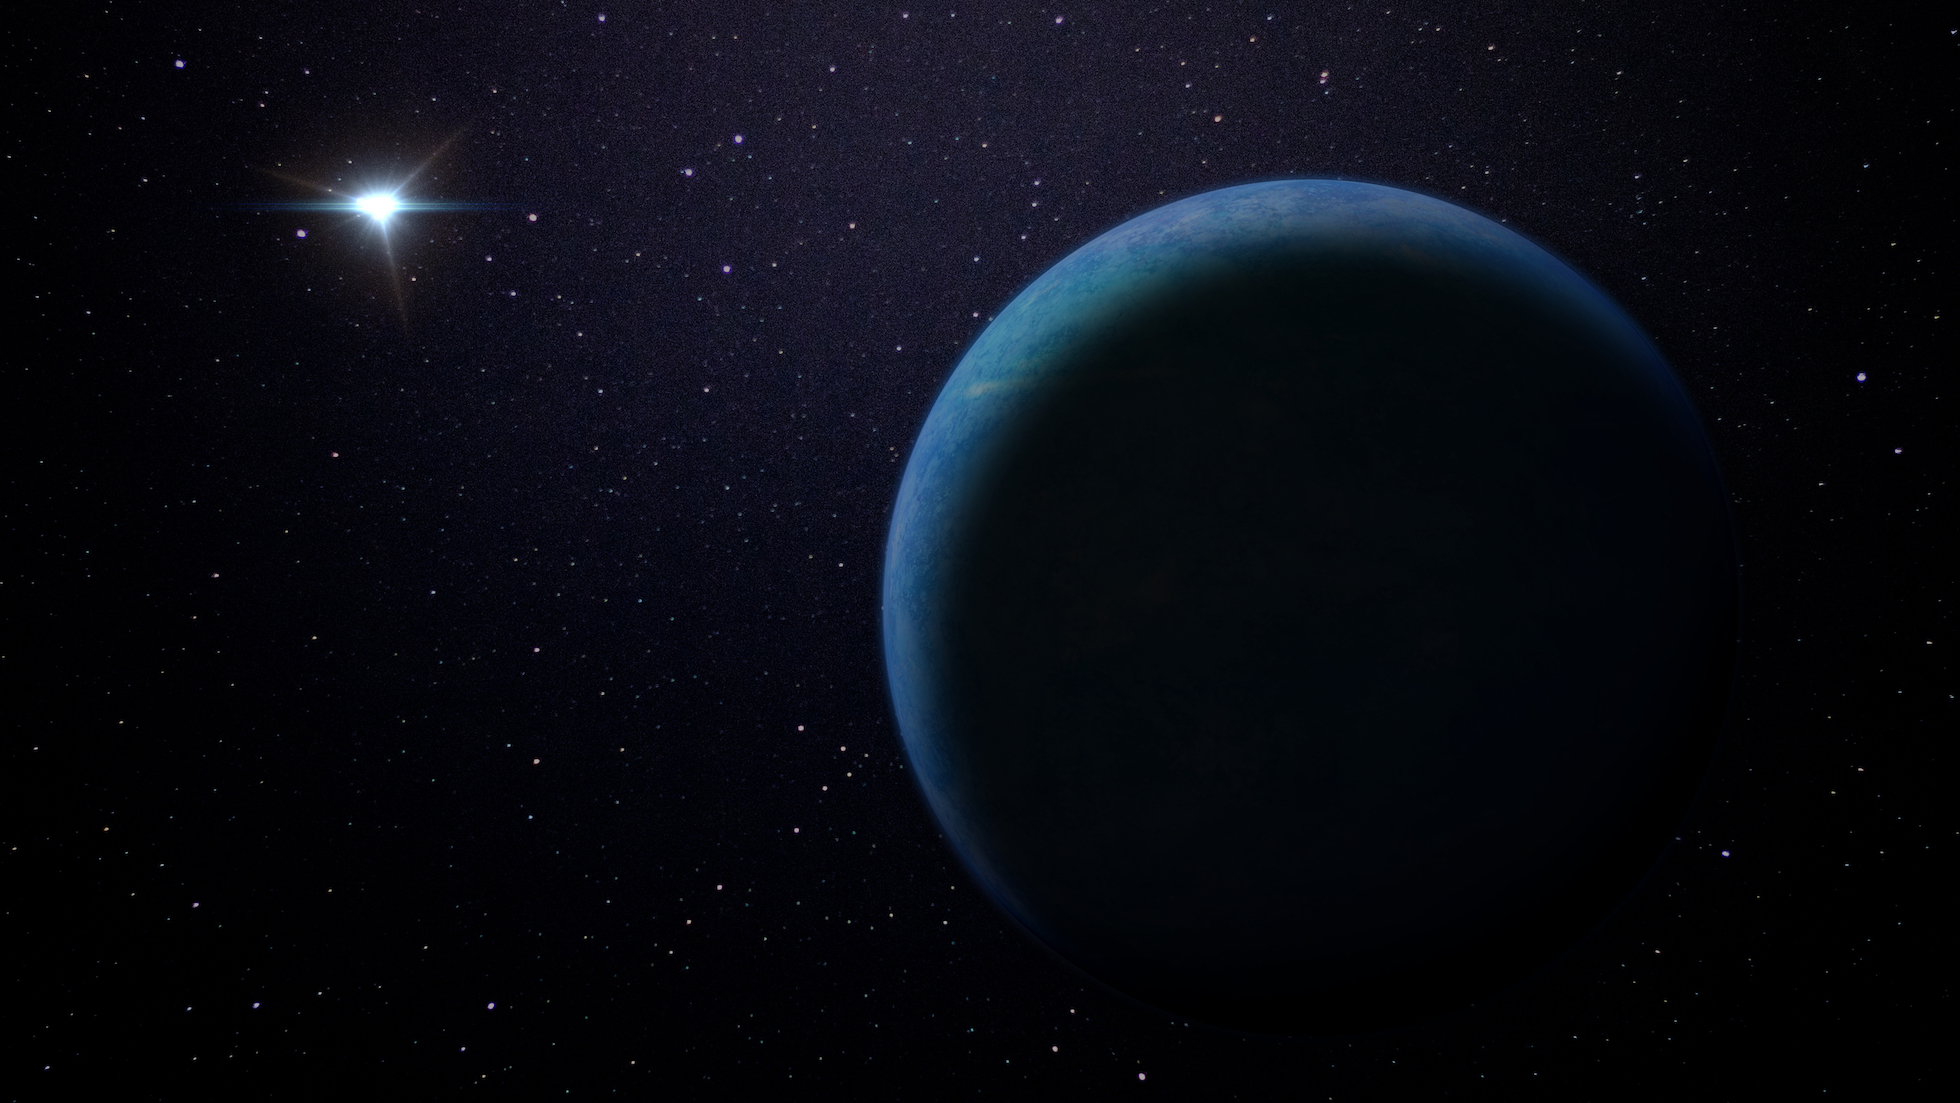 Astronomers suspect that there is a giant planet in our solar system that is 20 times farther from the Sun than Neptune and has ten times the planetary mass of the Earth